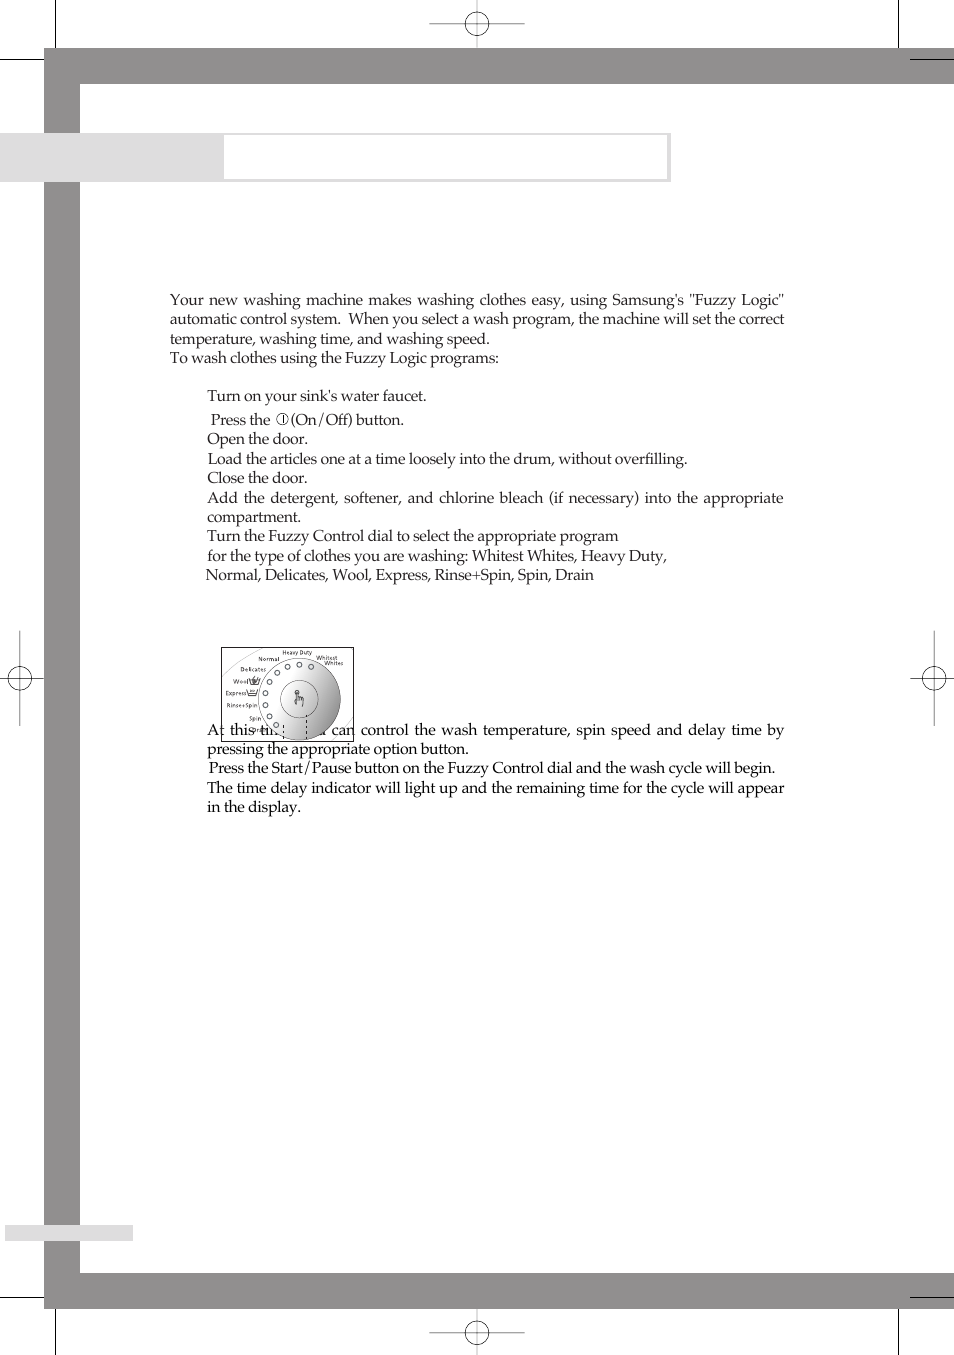 washing a load of laundry  washing clothes using fuzzy logic samsung b1113j user manual page samsung fuzzy washing machine manual Samsung Washing Machine Troubleshooting Manual